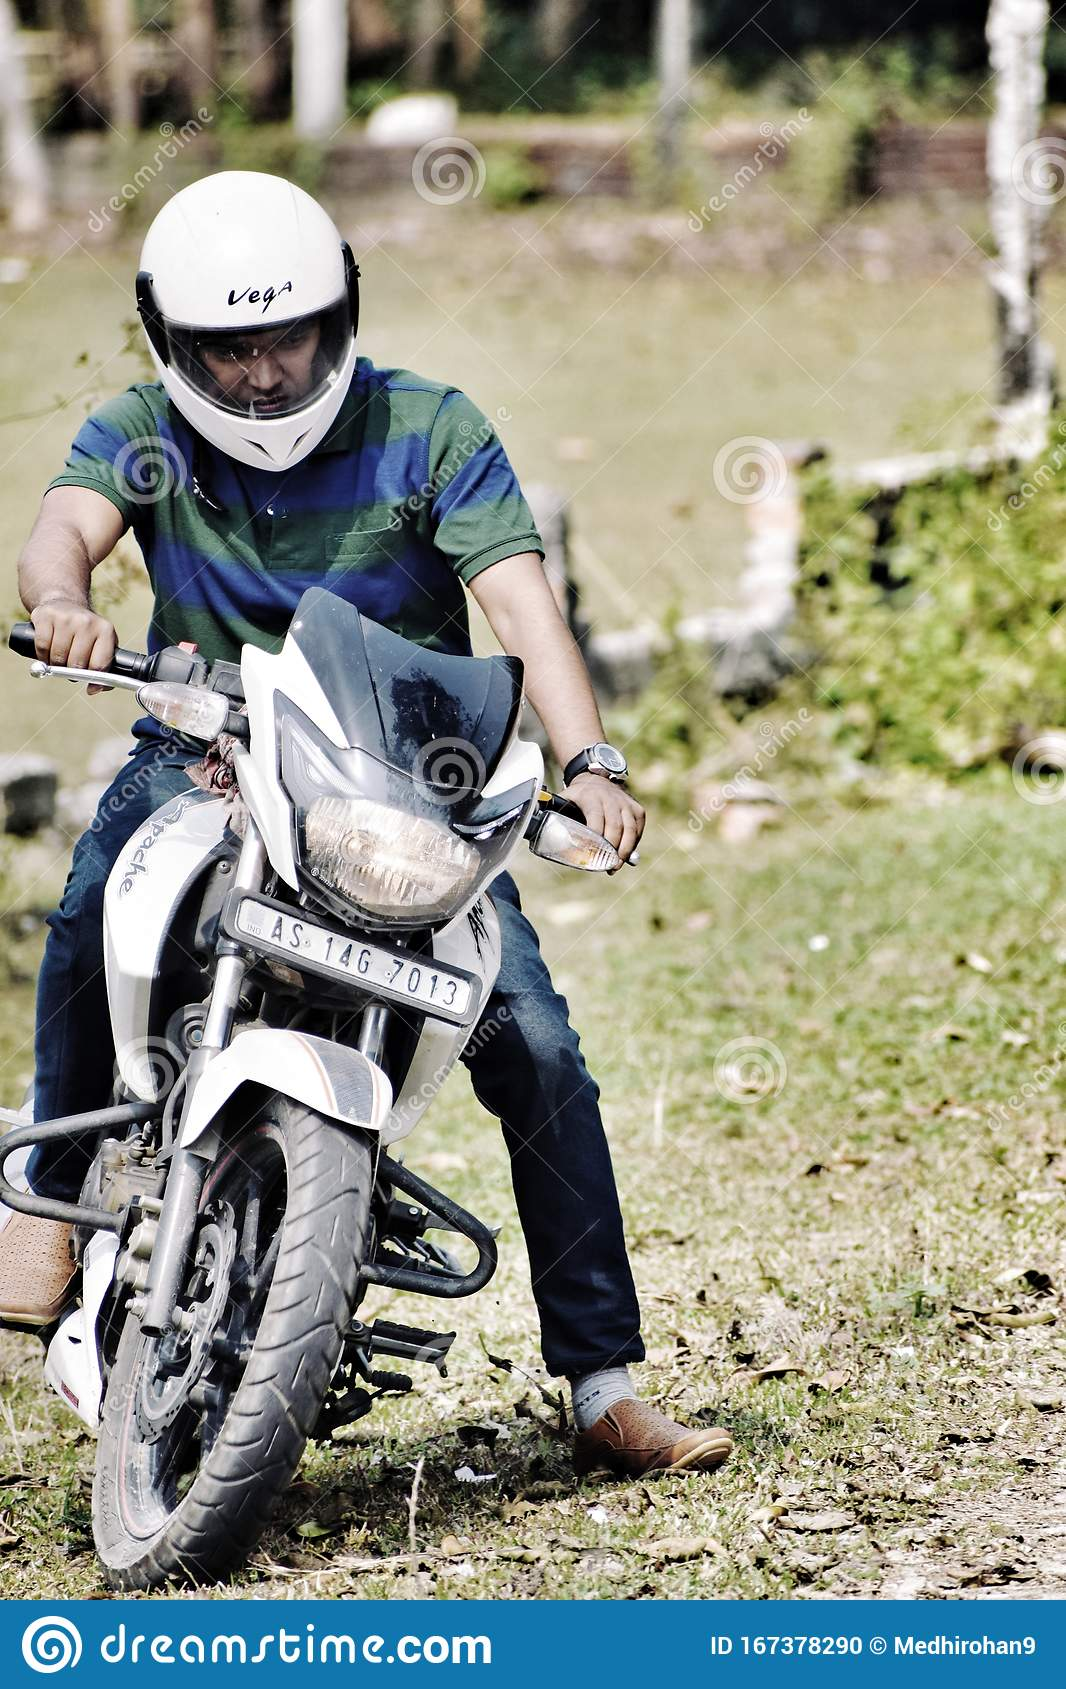 467 Indian Boy Bike Photos Free Royalty Free Stock Photos From Dreamstime